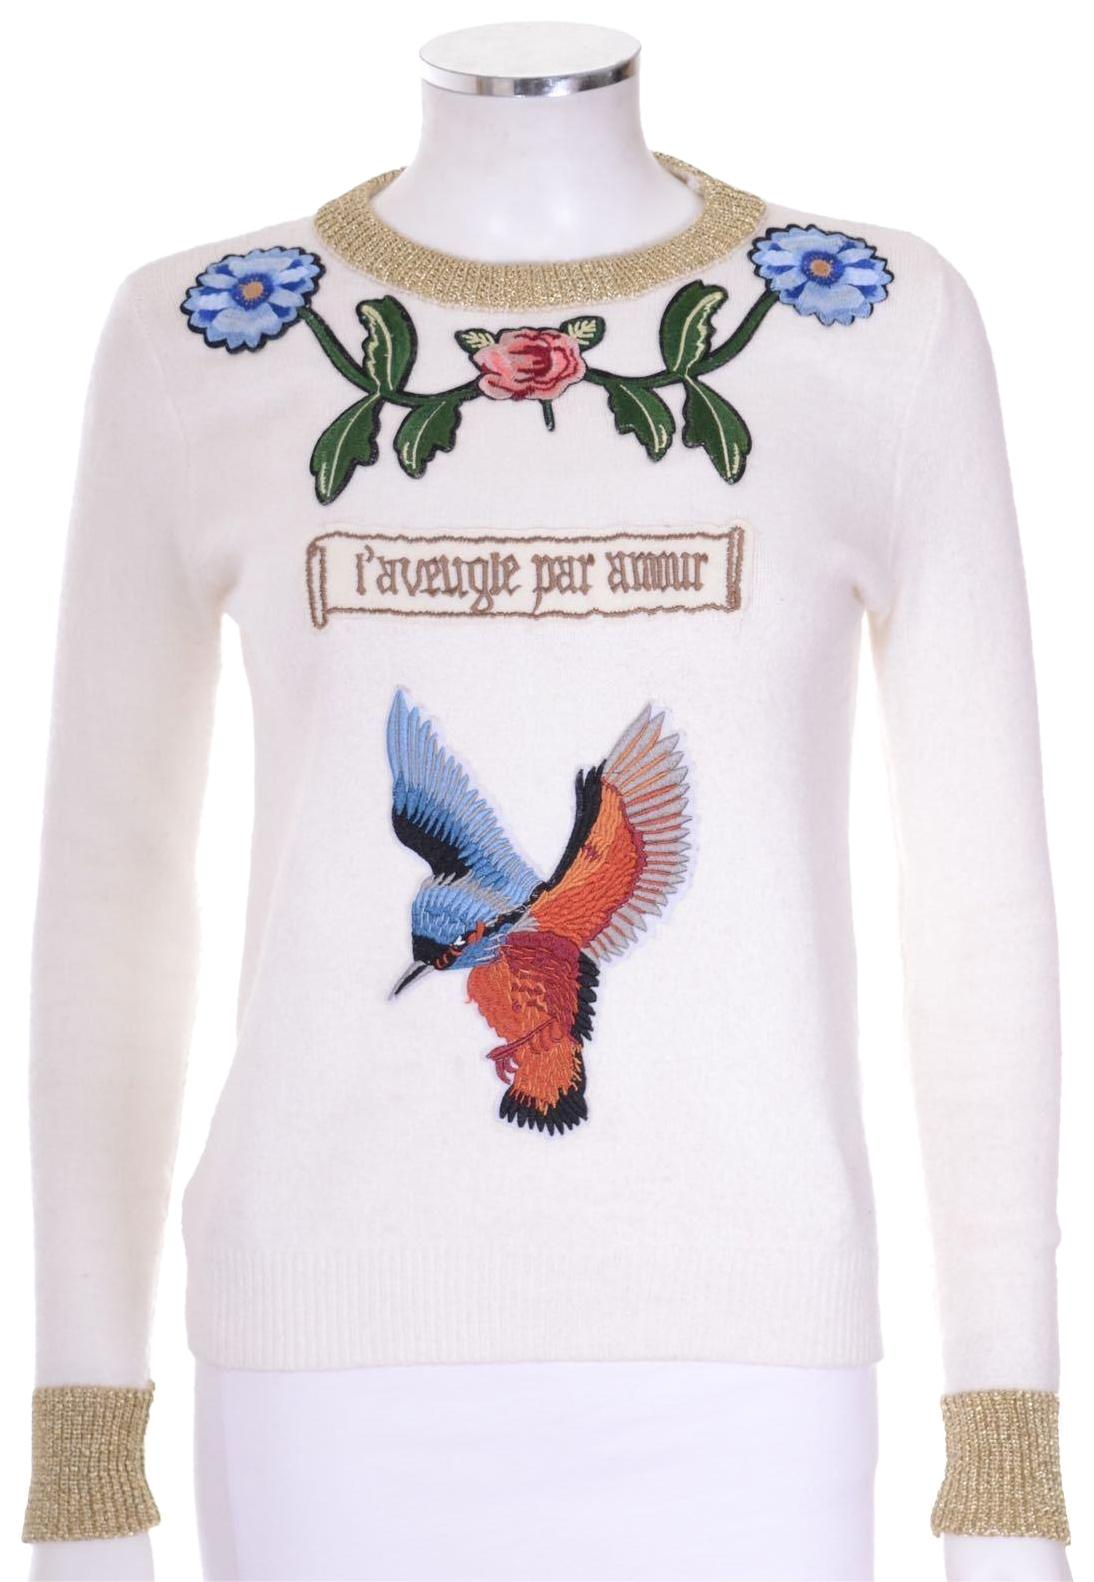 34ace53c Gucci Sweater With Flowers | Gardening: Flower and Vegetables